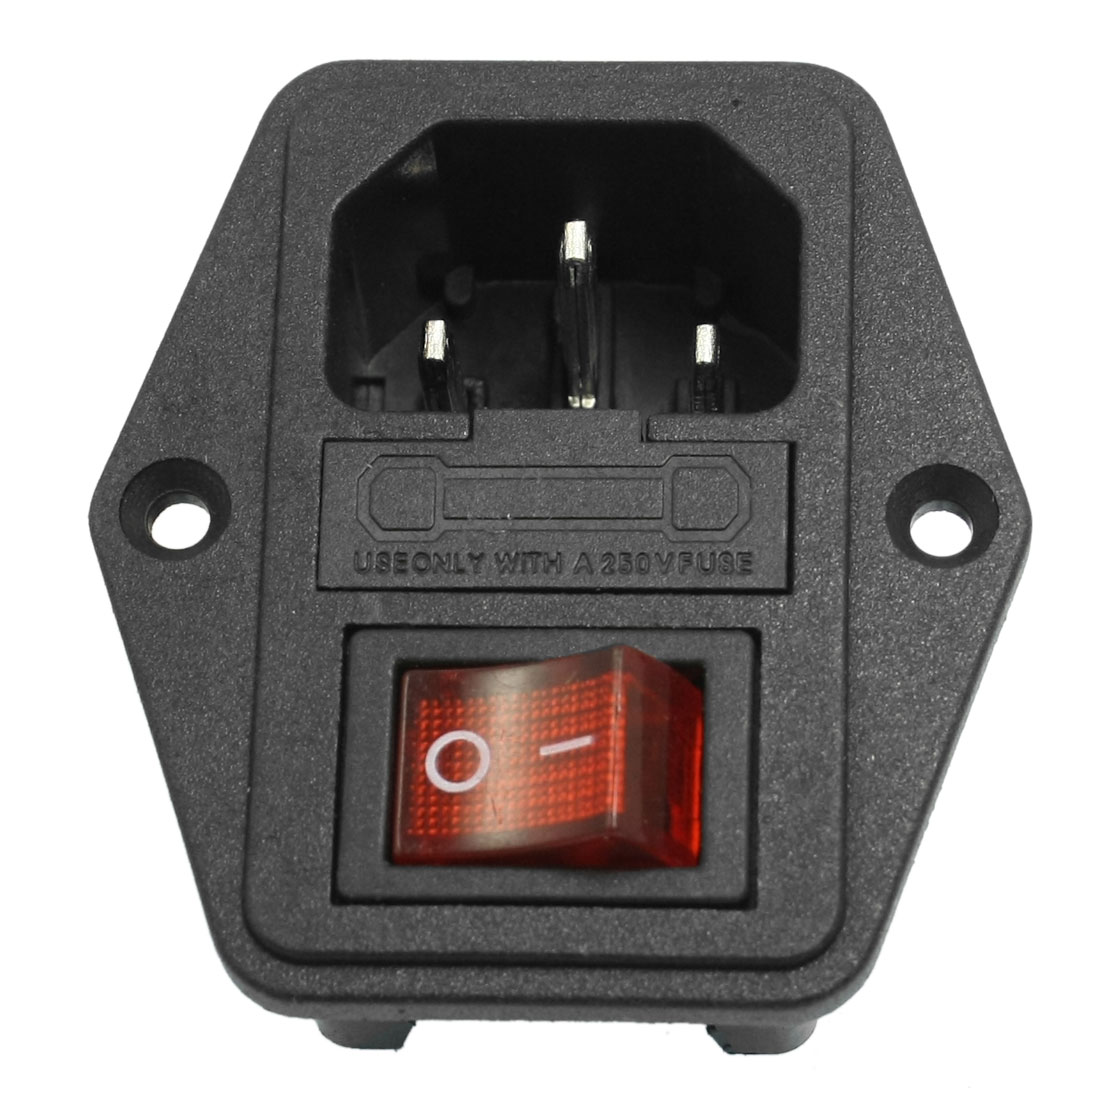 AC 250V 10A 3P IEC320 C14 Inlet Connector Power Socket + Fuse Holder Black Red